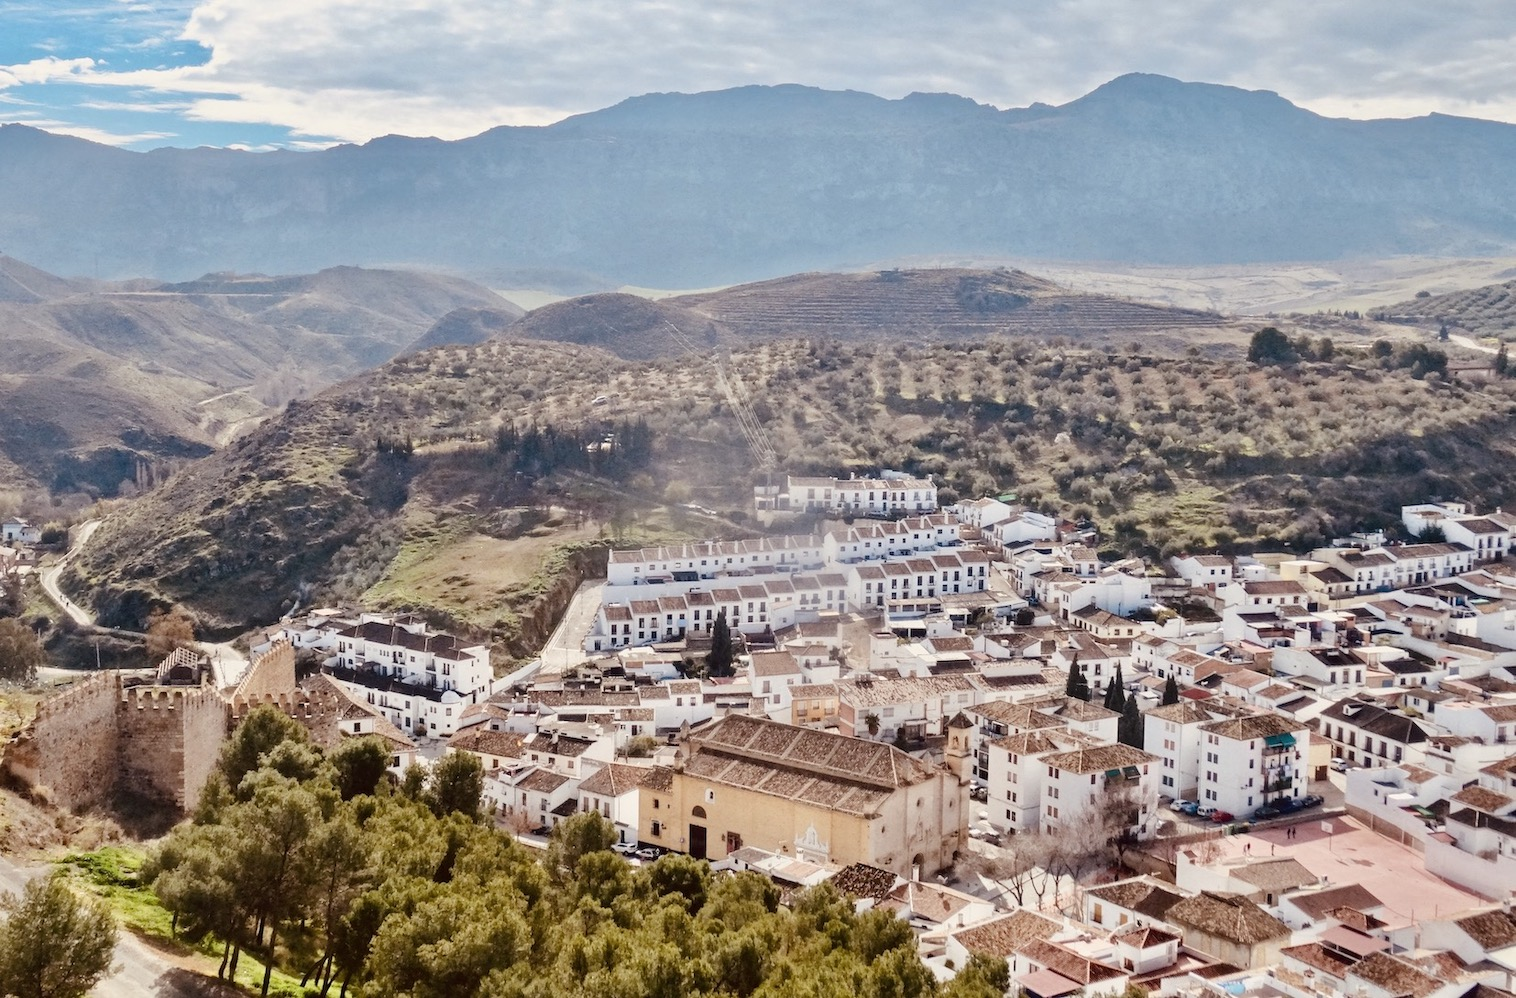 Views over Antequera in Spain.